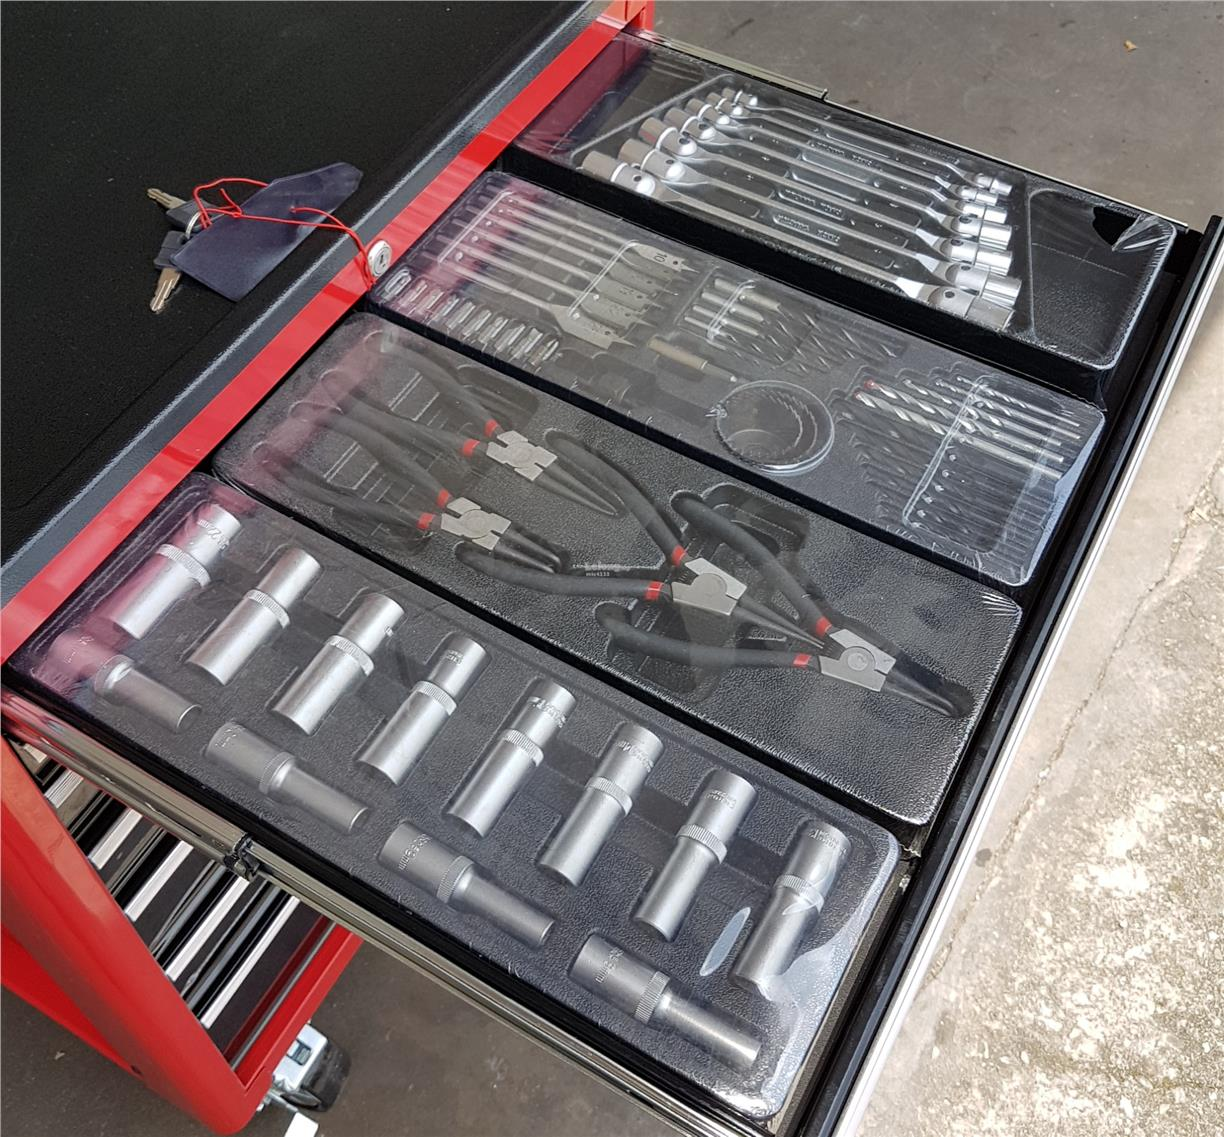 7 Drawers tool cabinet c/w 250 pcs tool sets